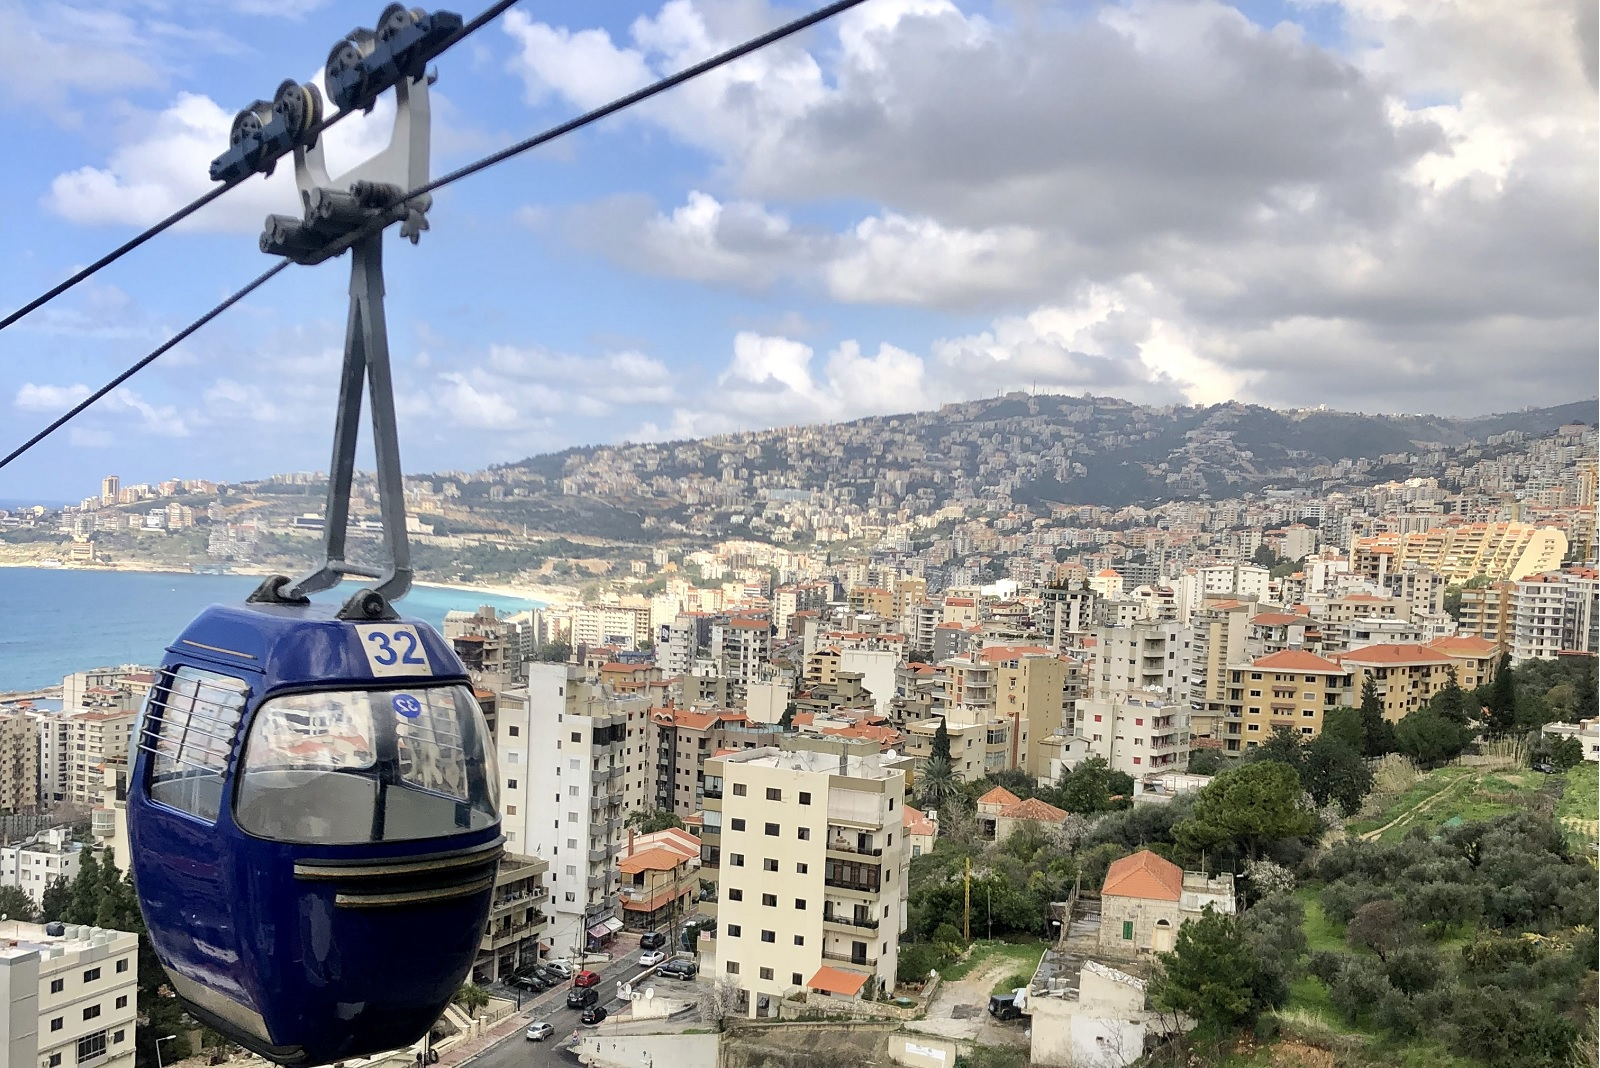 Telepherique Jounieh